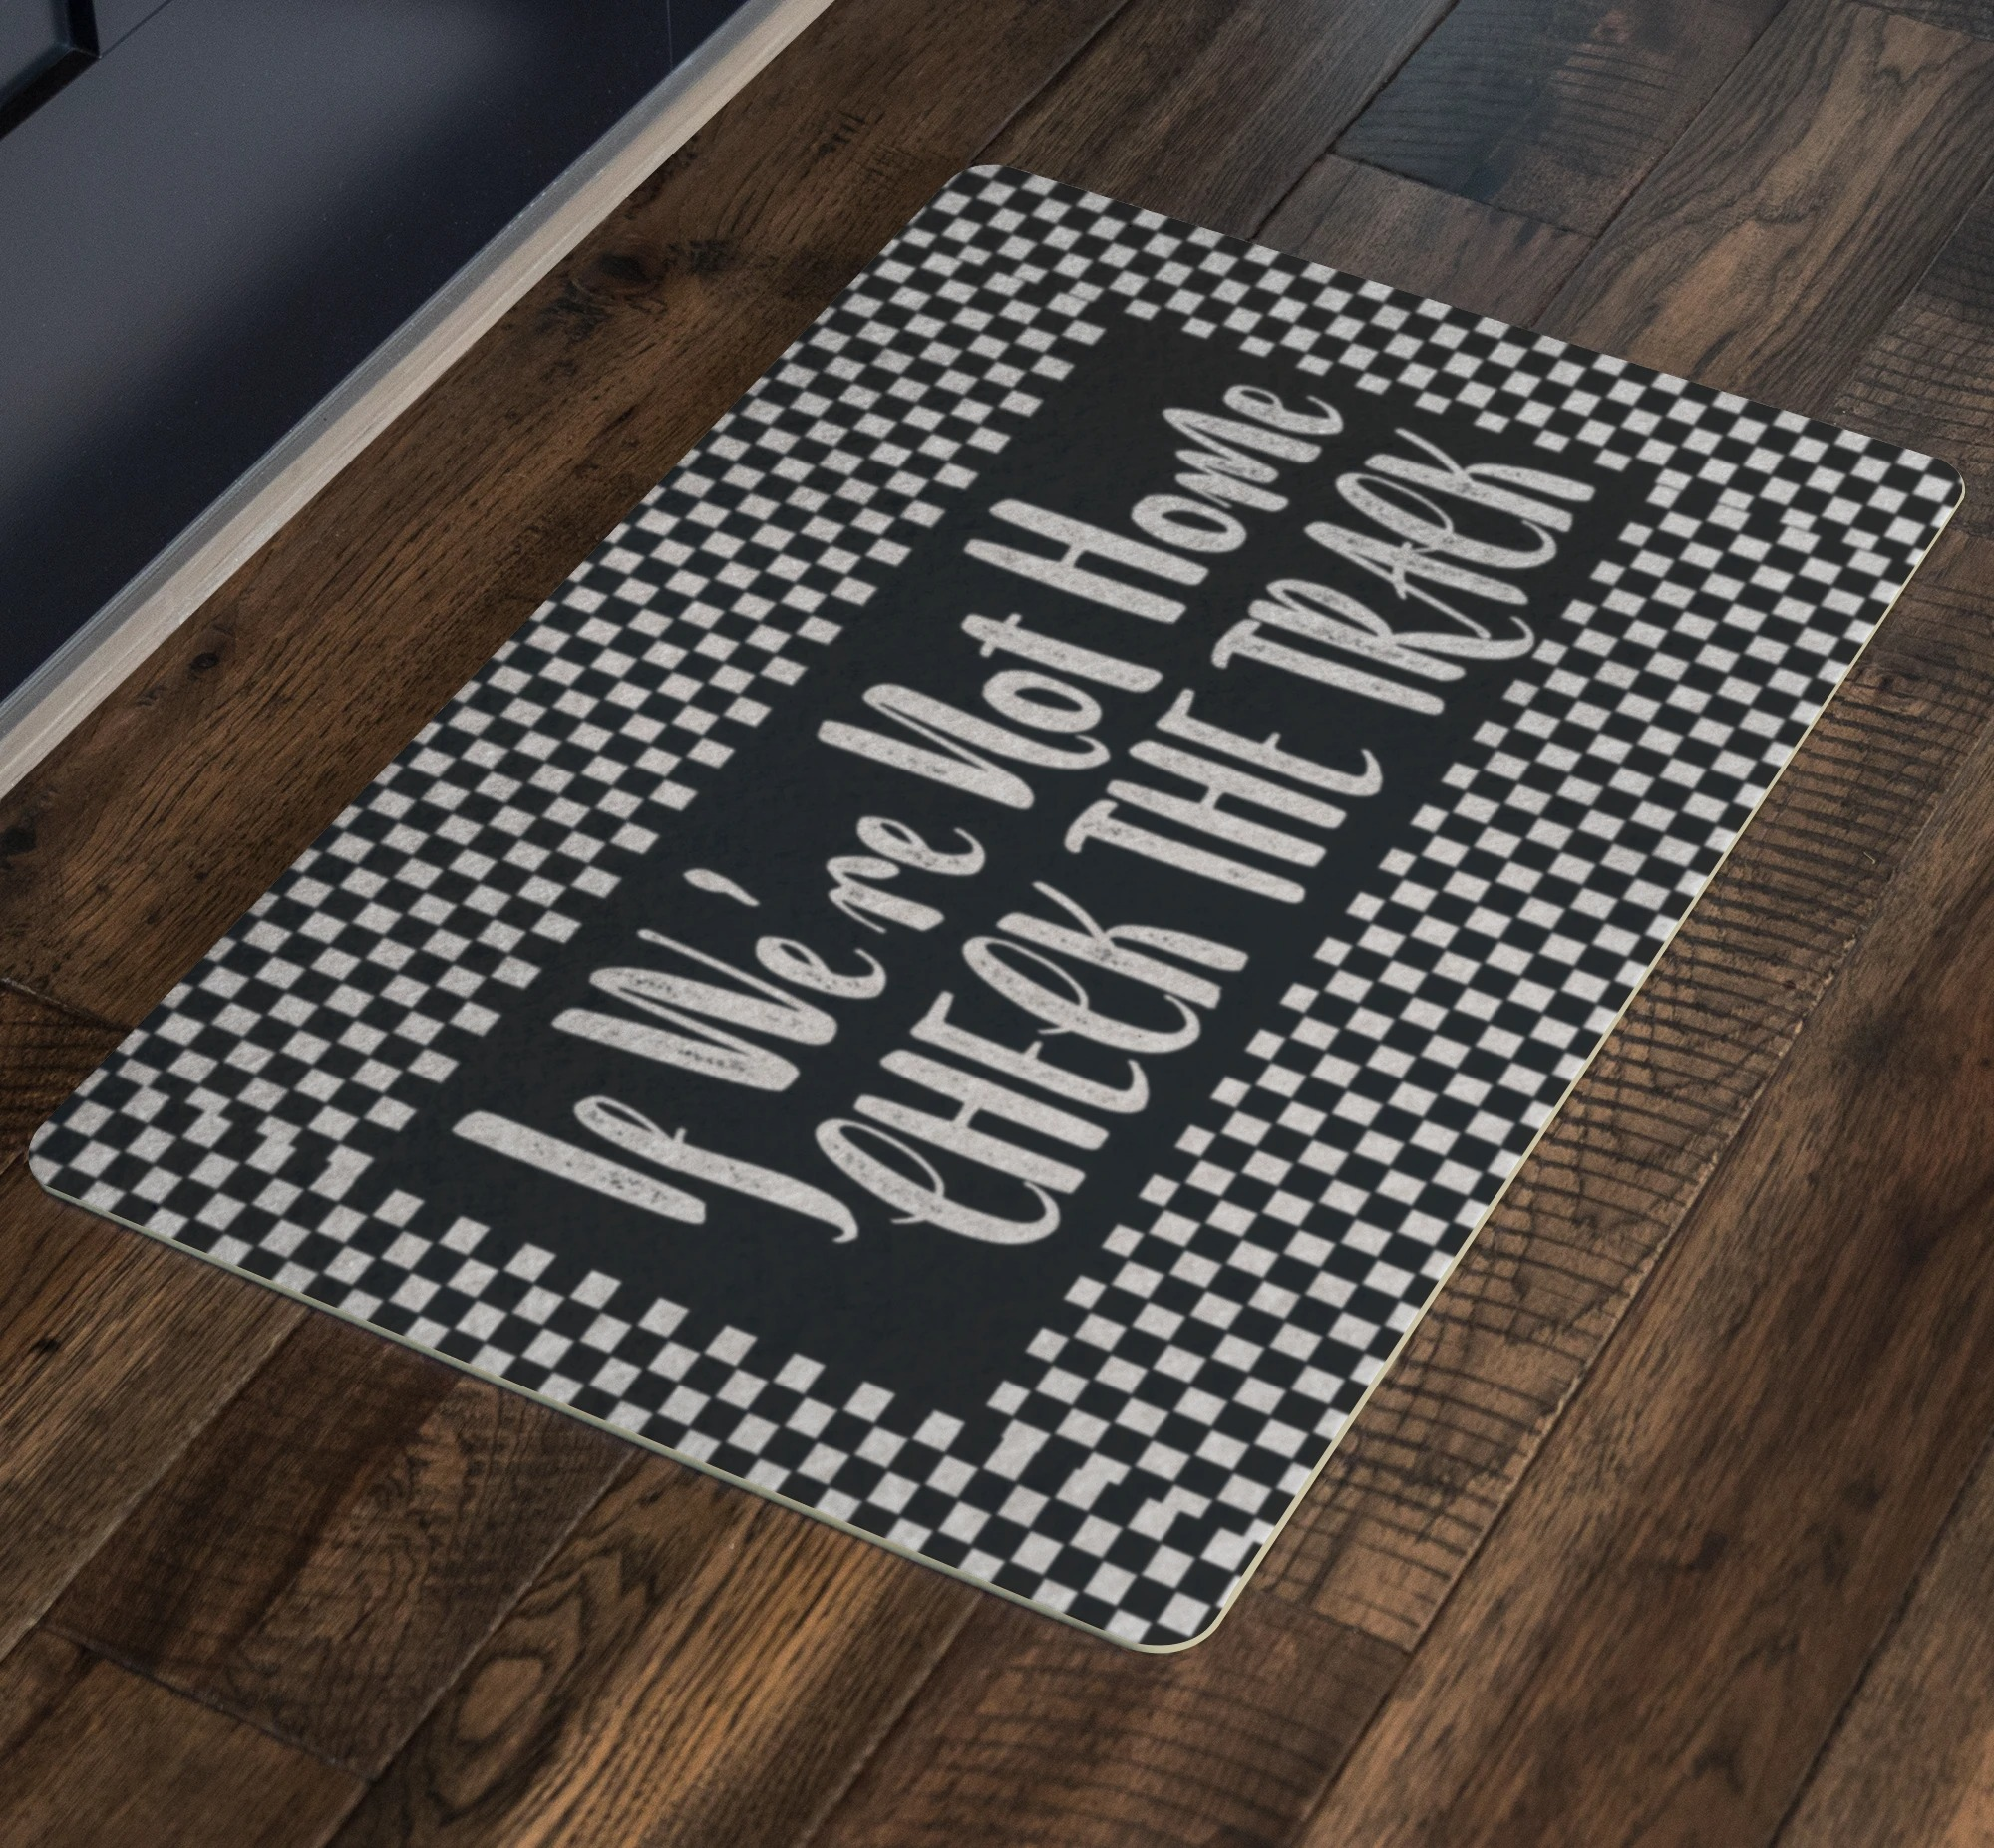 If we're not home check the track racing doormat 2